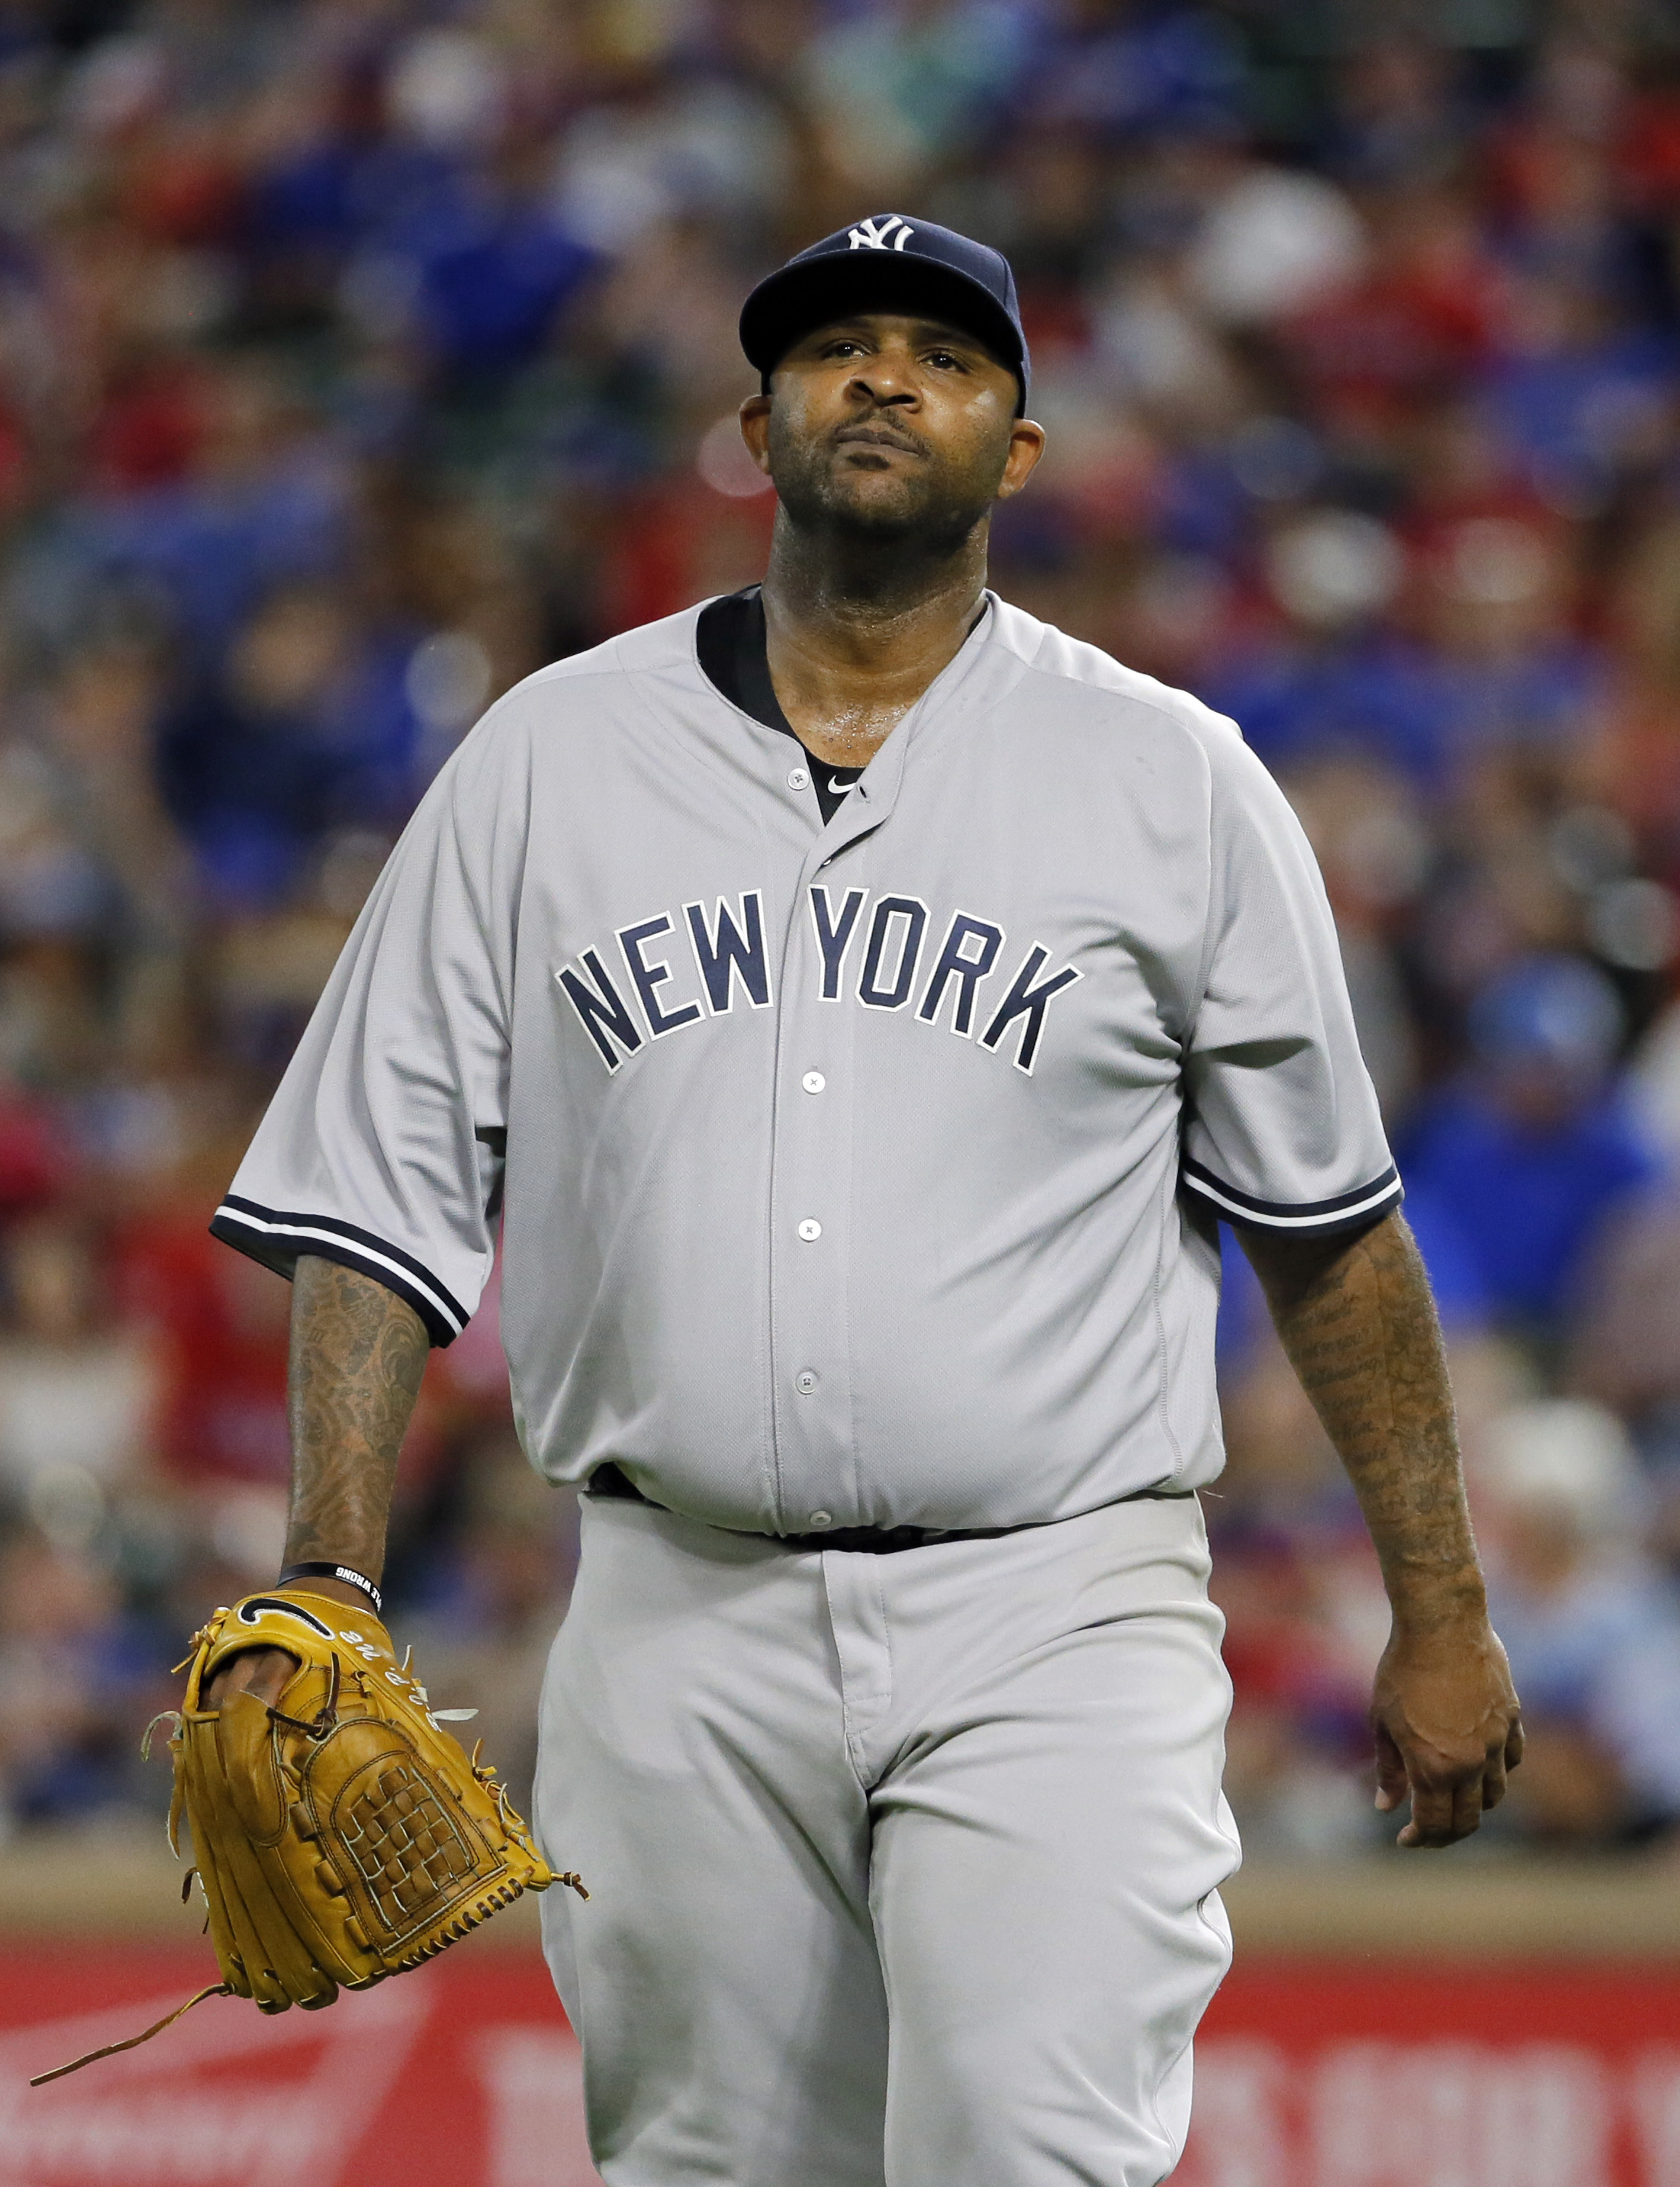 New York Yankees starting pitcher CC Sabathia walks off the mound after the top of the fifth inning of a baseball game against the Texas Rangers on Wednesday, April 27, 2016, in Arlington, Texas. (AP Photo/Tony Gutierrez)